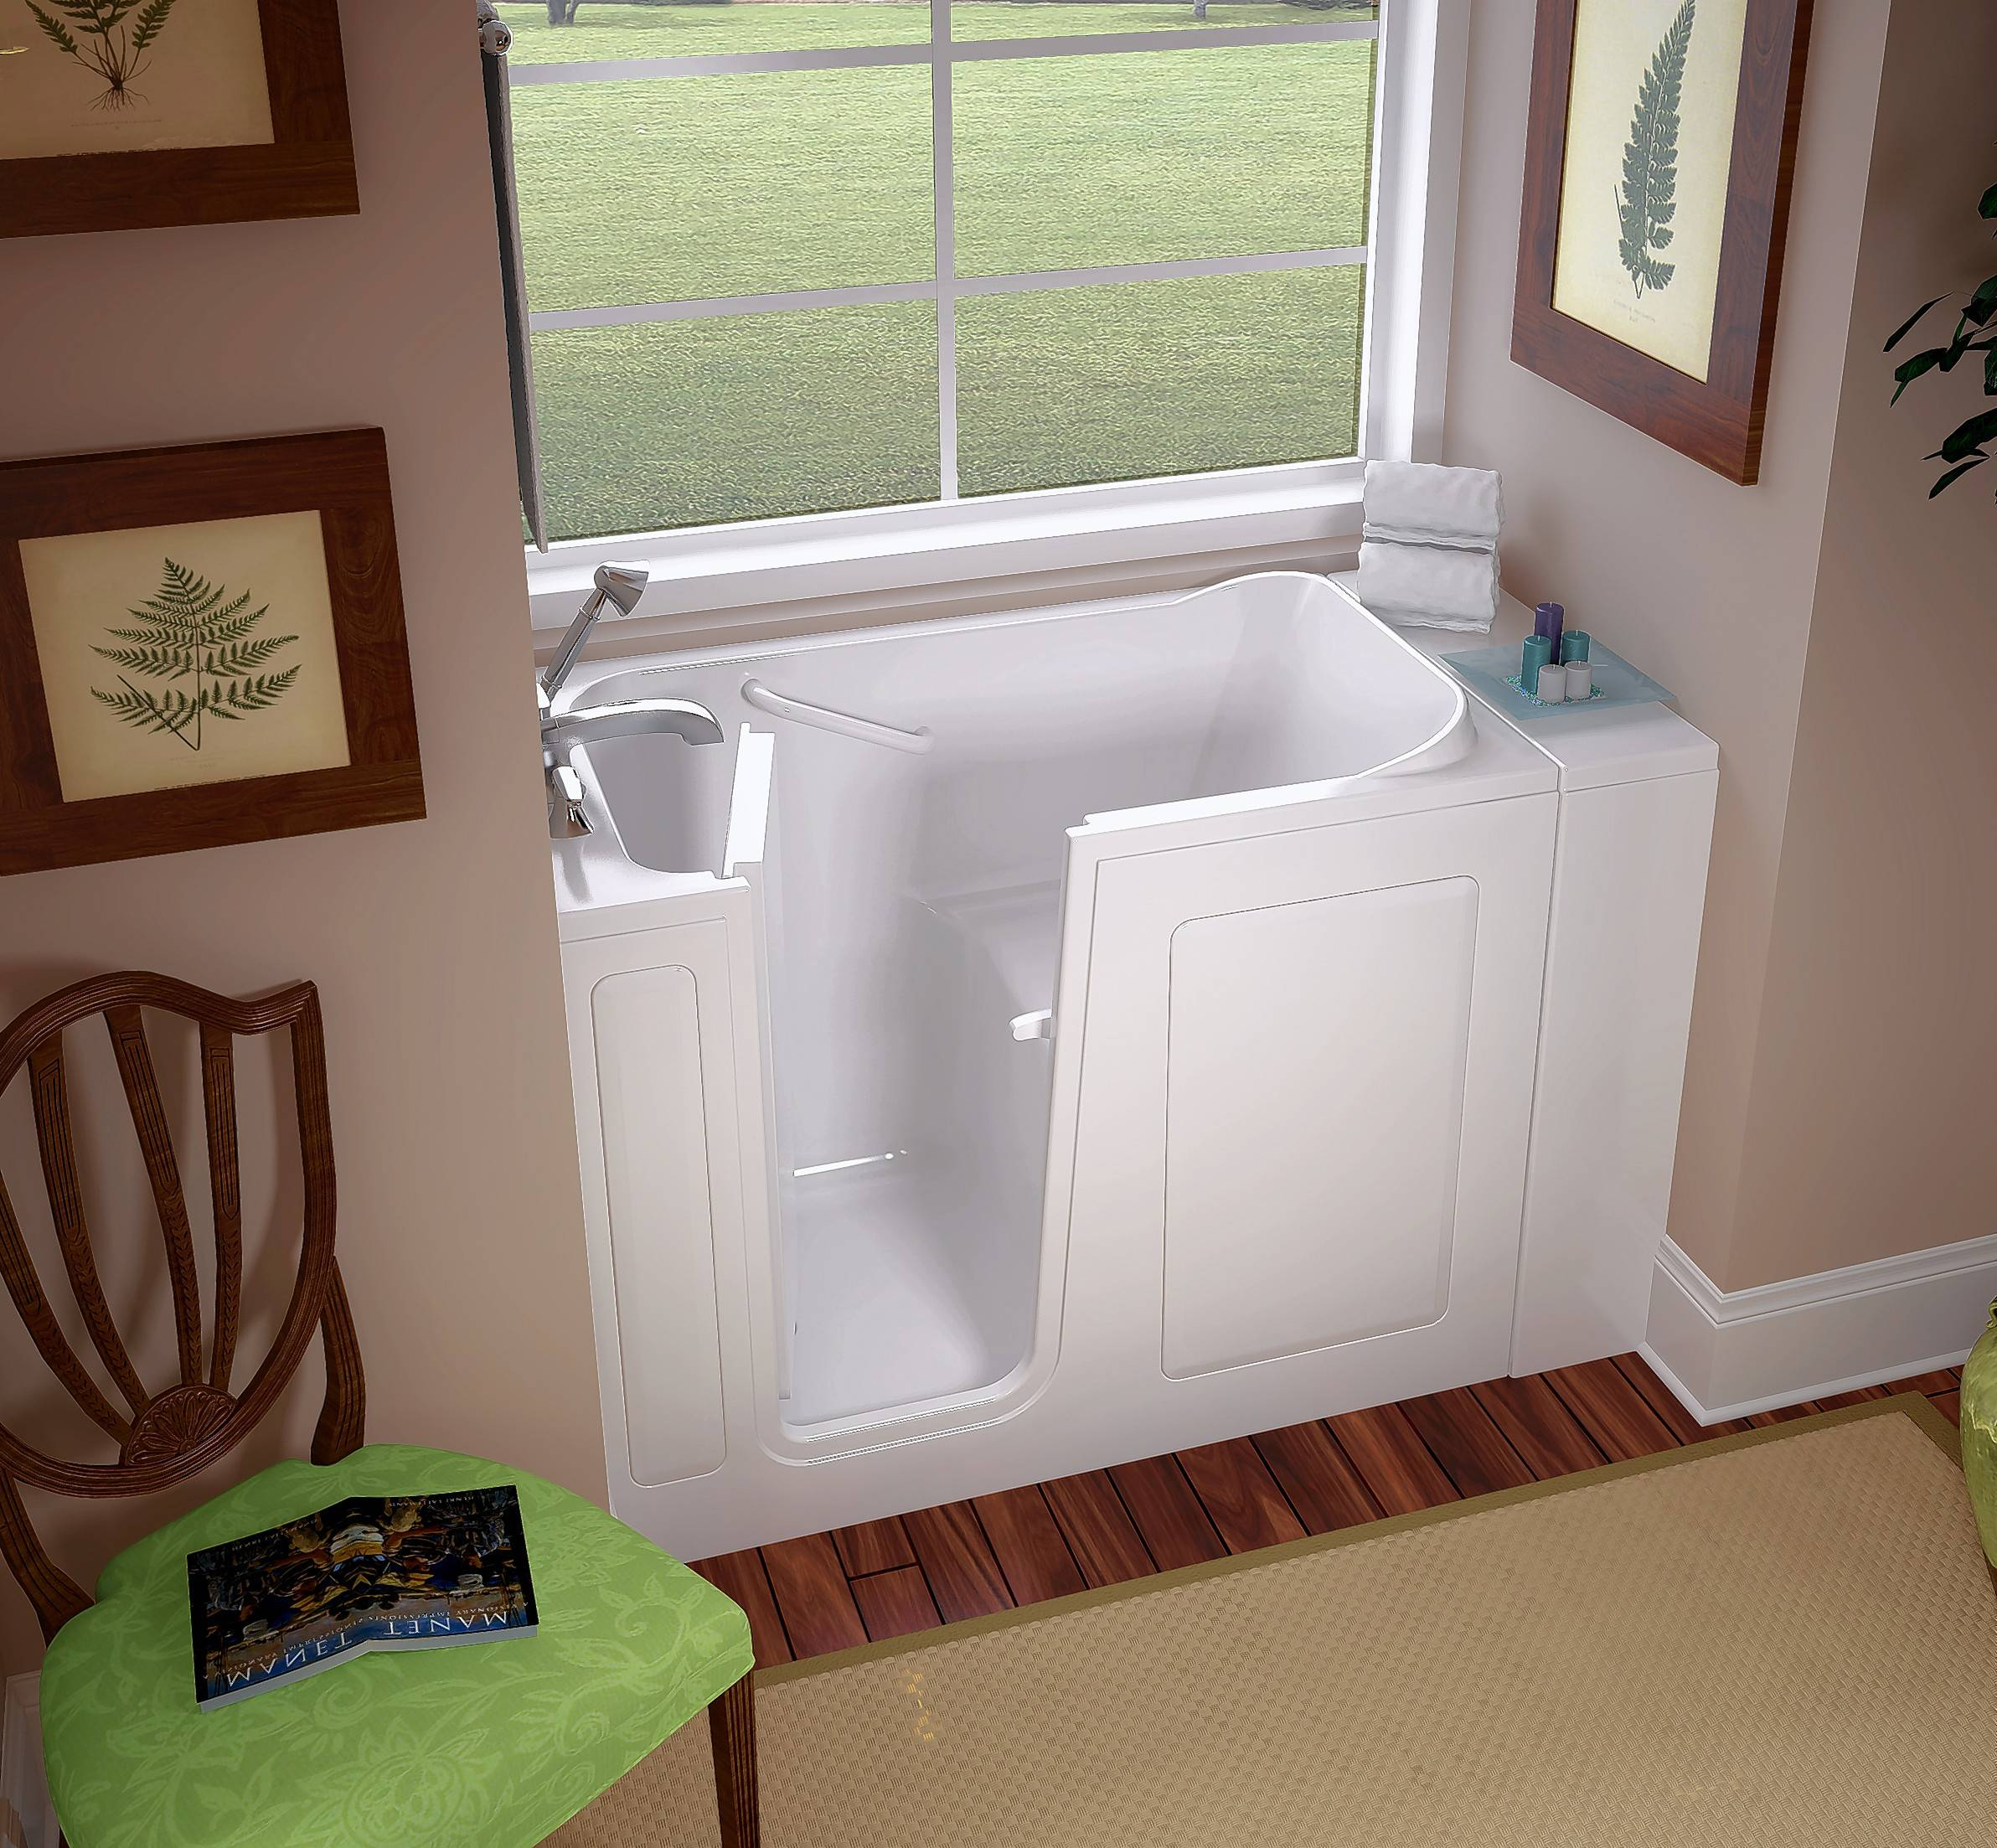 Bath Planet installs accessibility products and aging-in-place bath systems to ensure independent living for as long as possible.